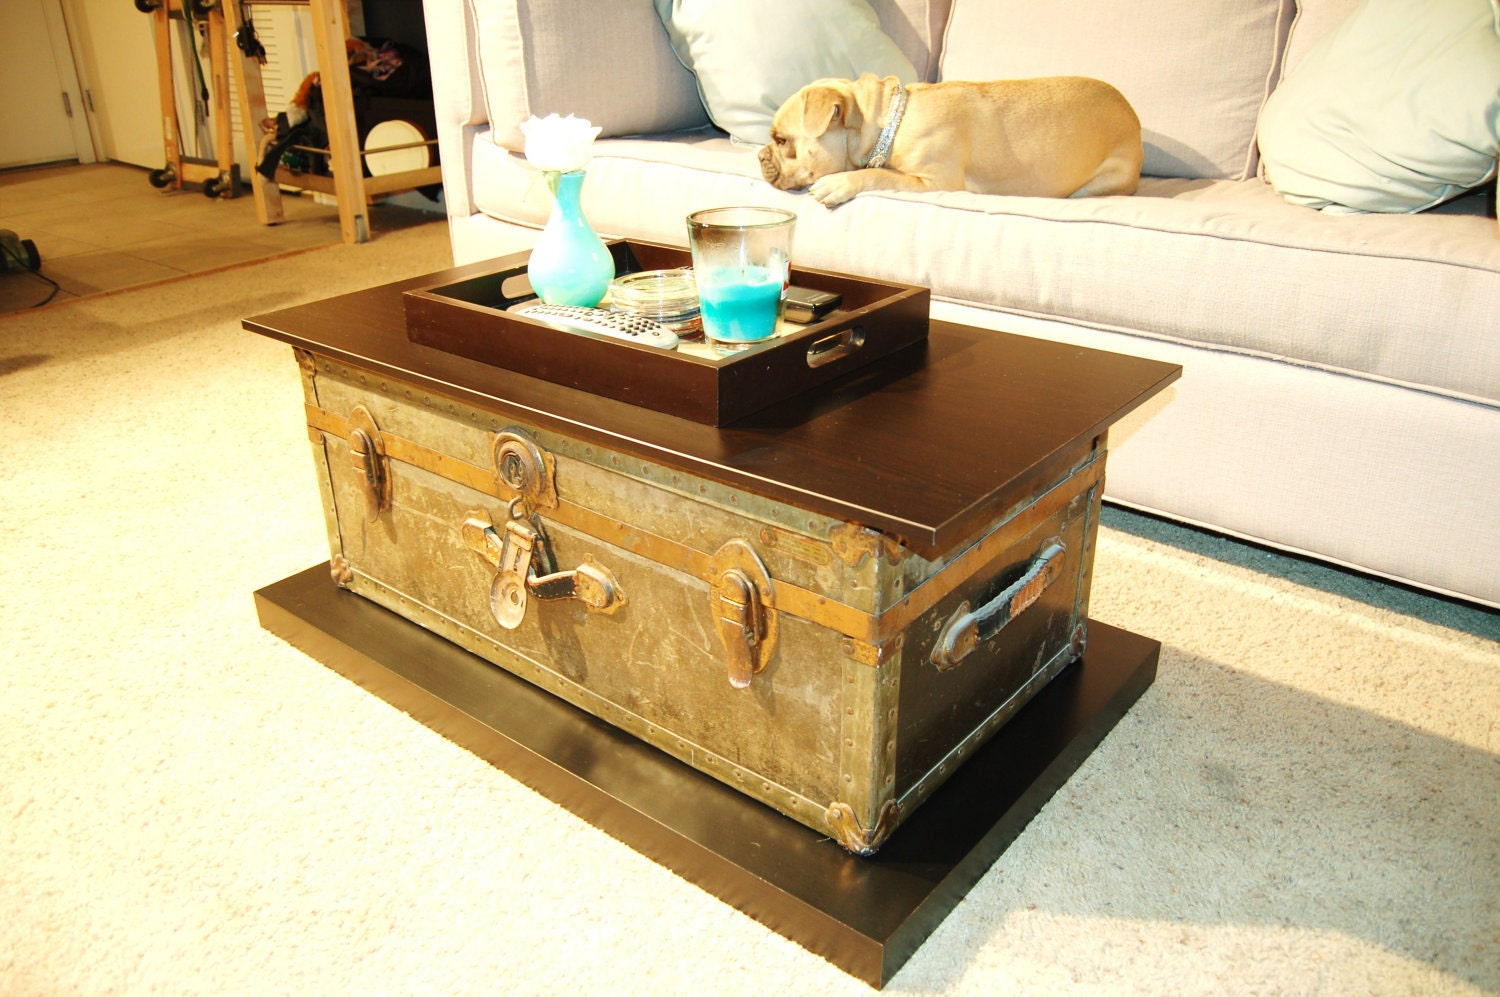 Http Www Etsy Com Listing 94199179 Vintage 1930s Trunk Coffee Table